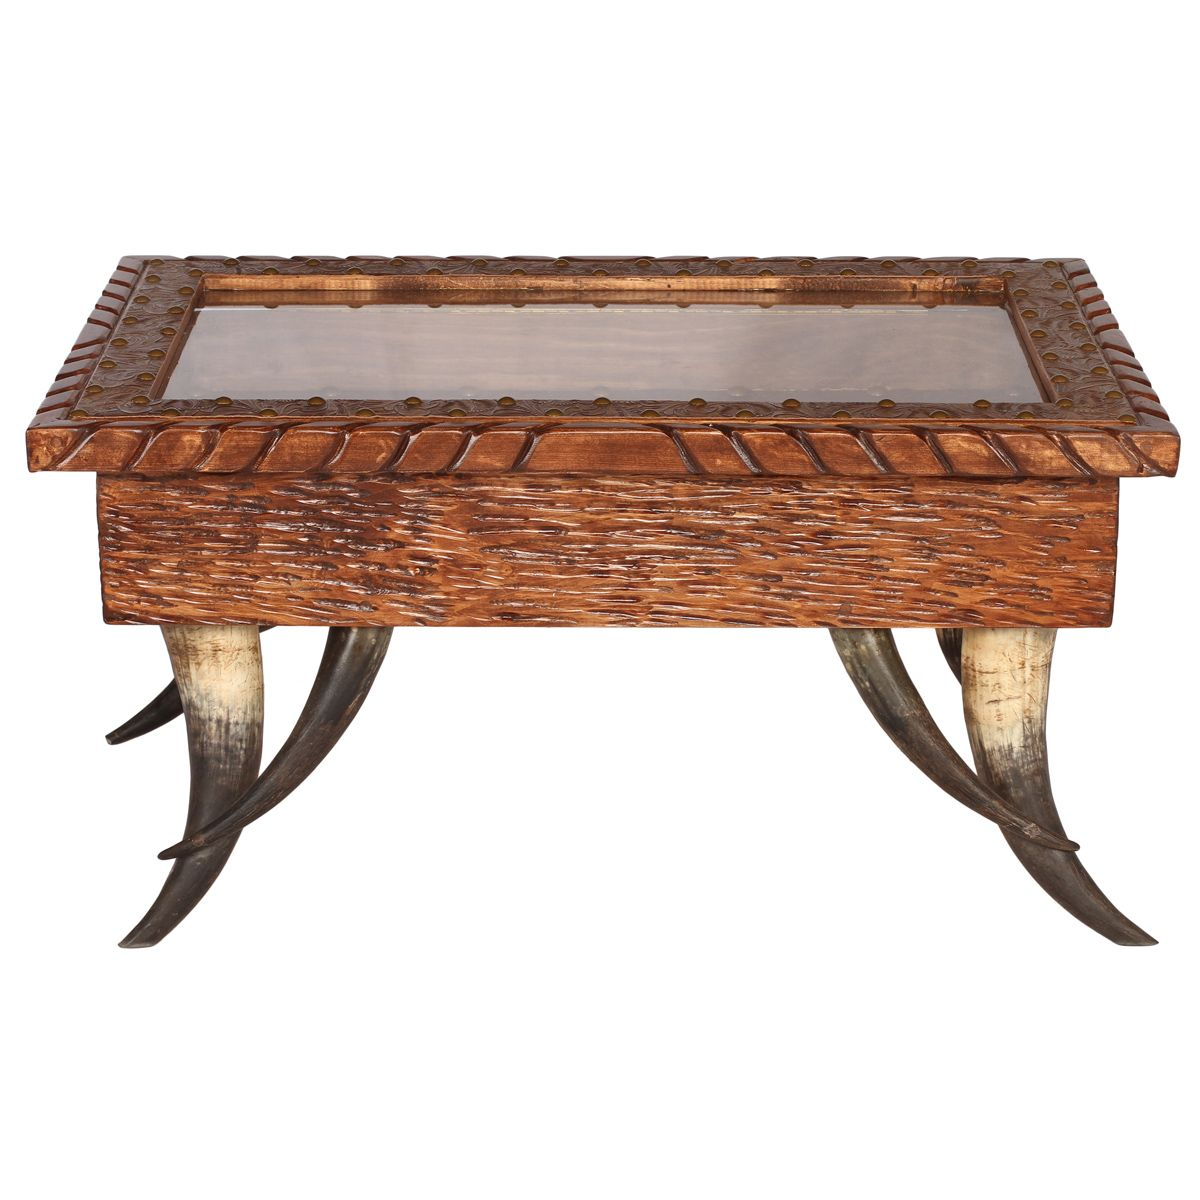 Horn Collection Shadow Box Coffee Table - Large